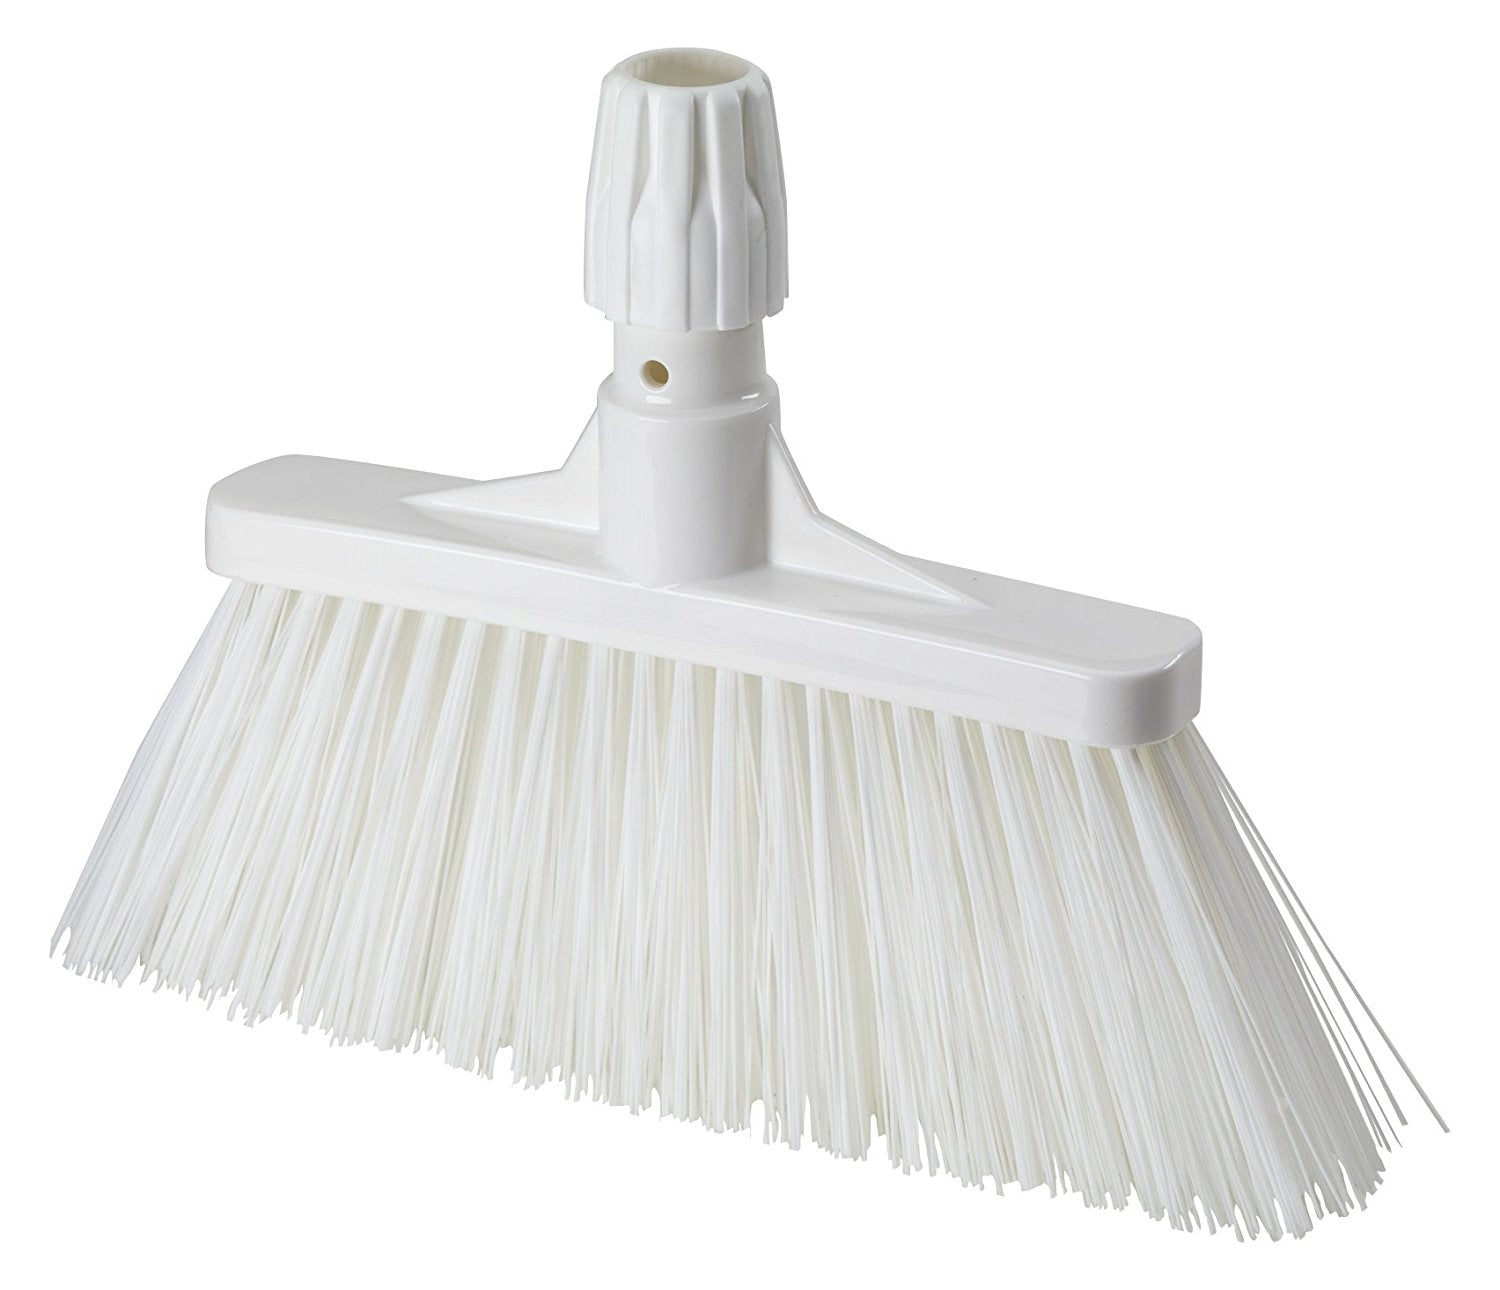 Aricasa Professional Hygiene Wide Broom, White, Medium, 6 Count